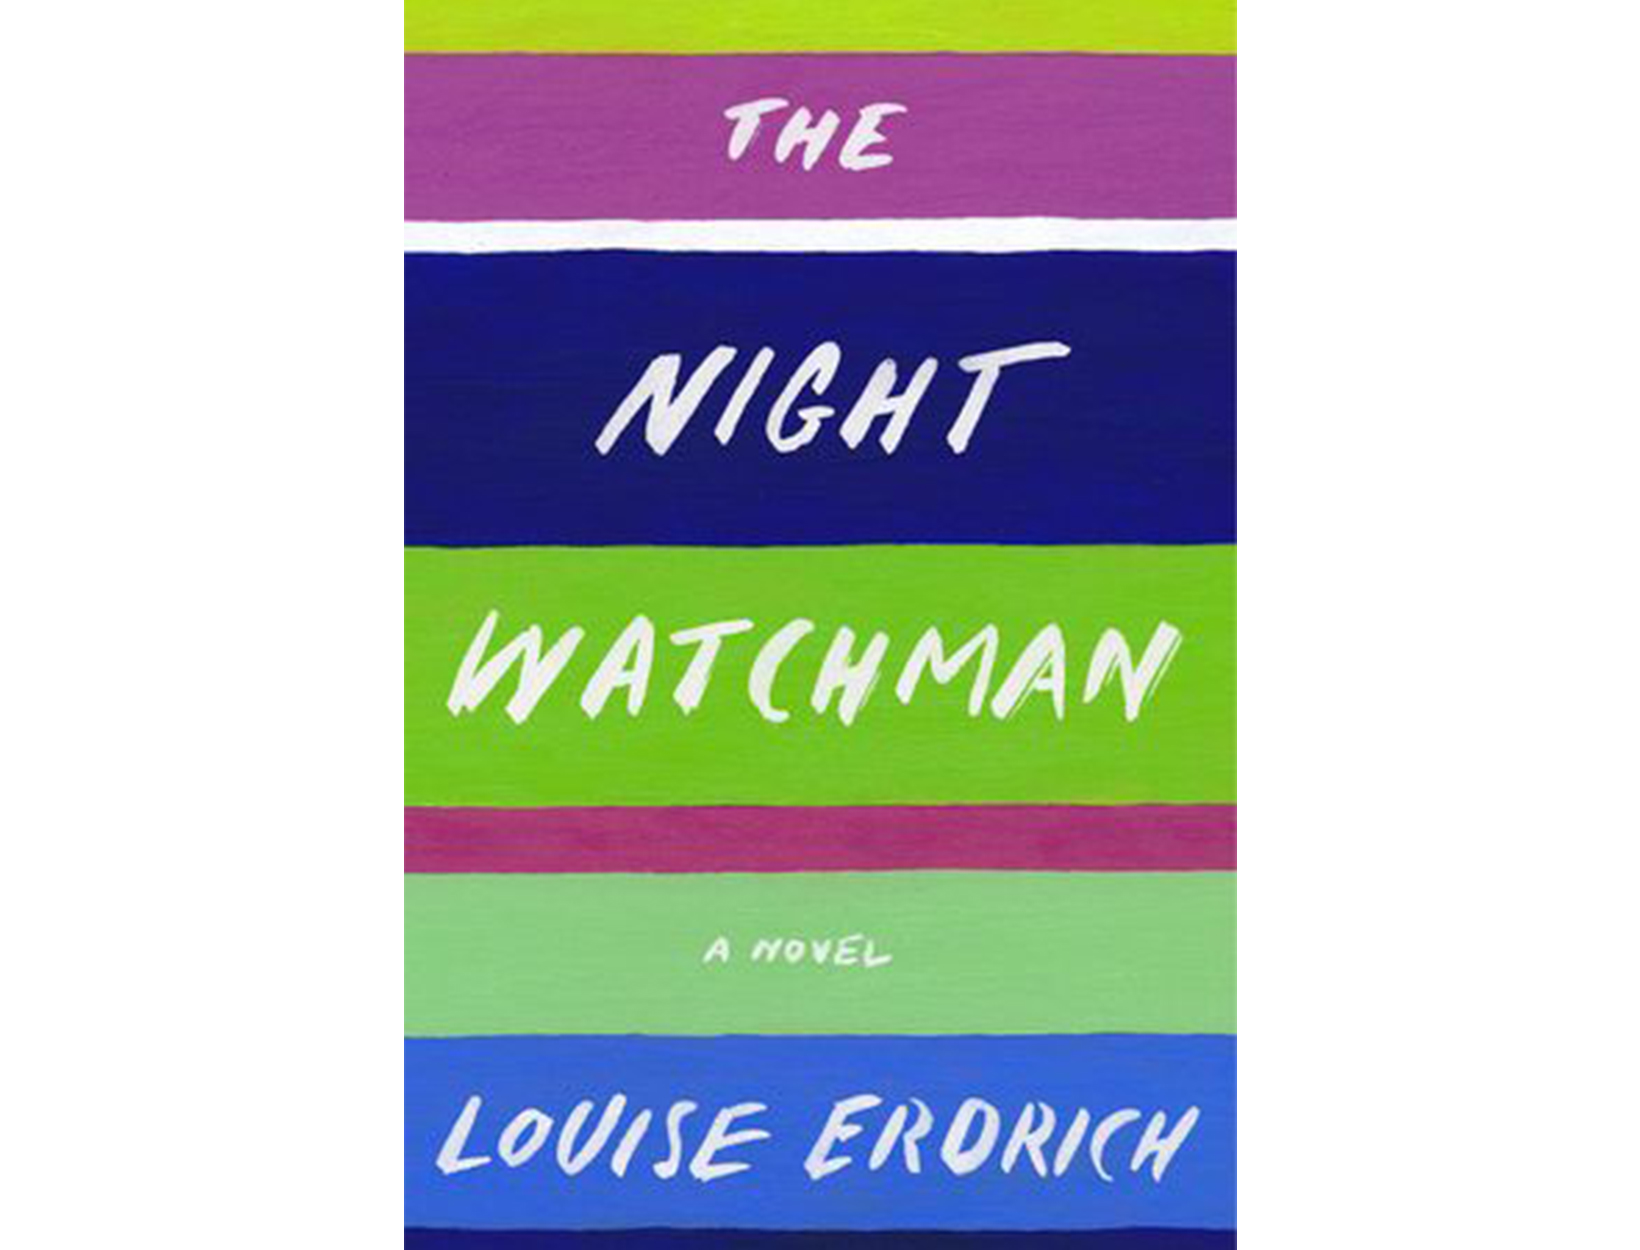 <em>The Night Watchman</em> by Louise Erdrich